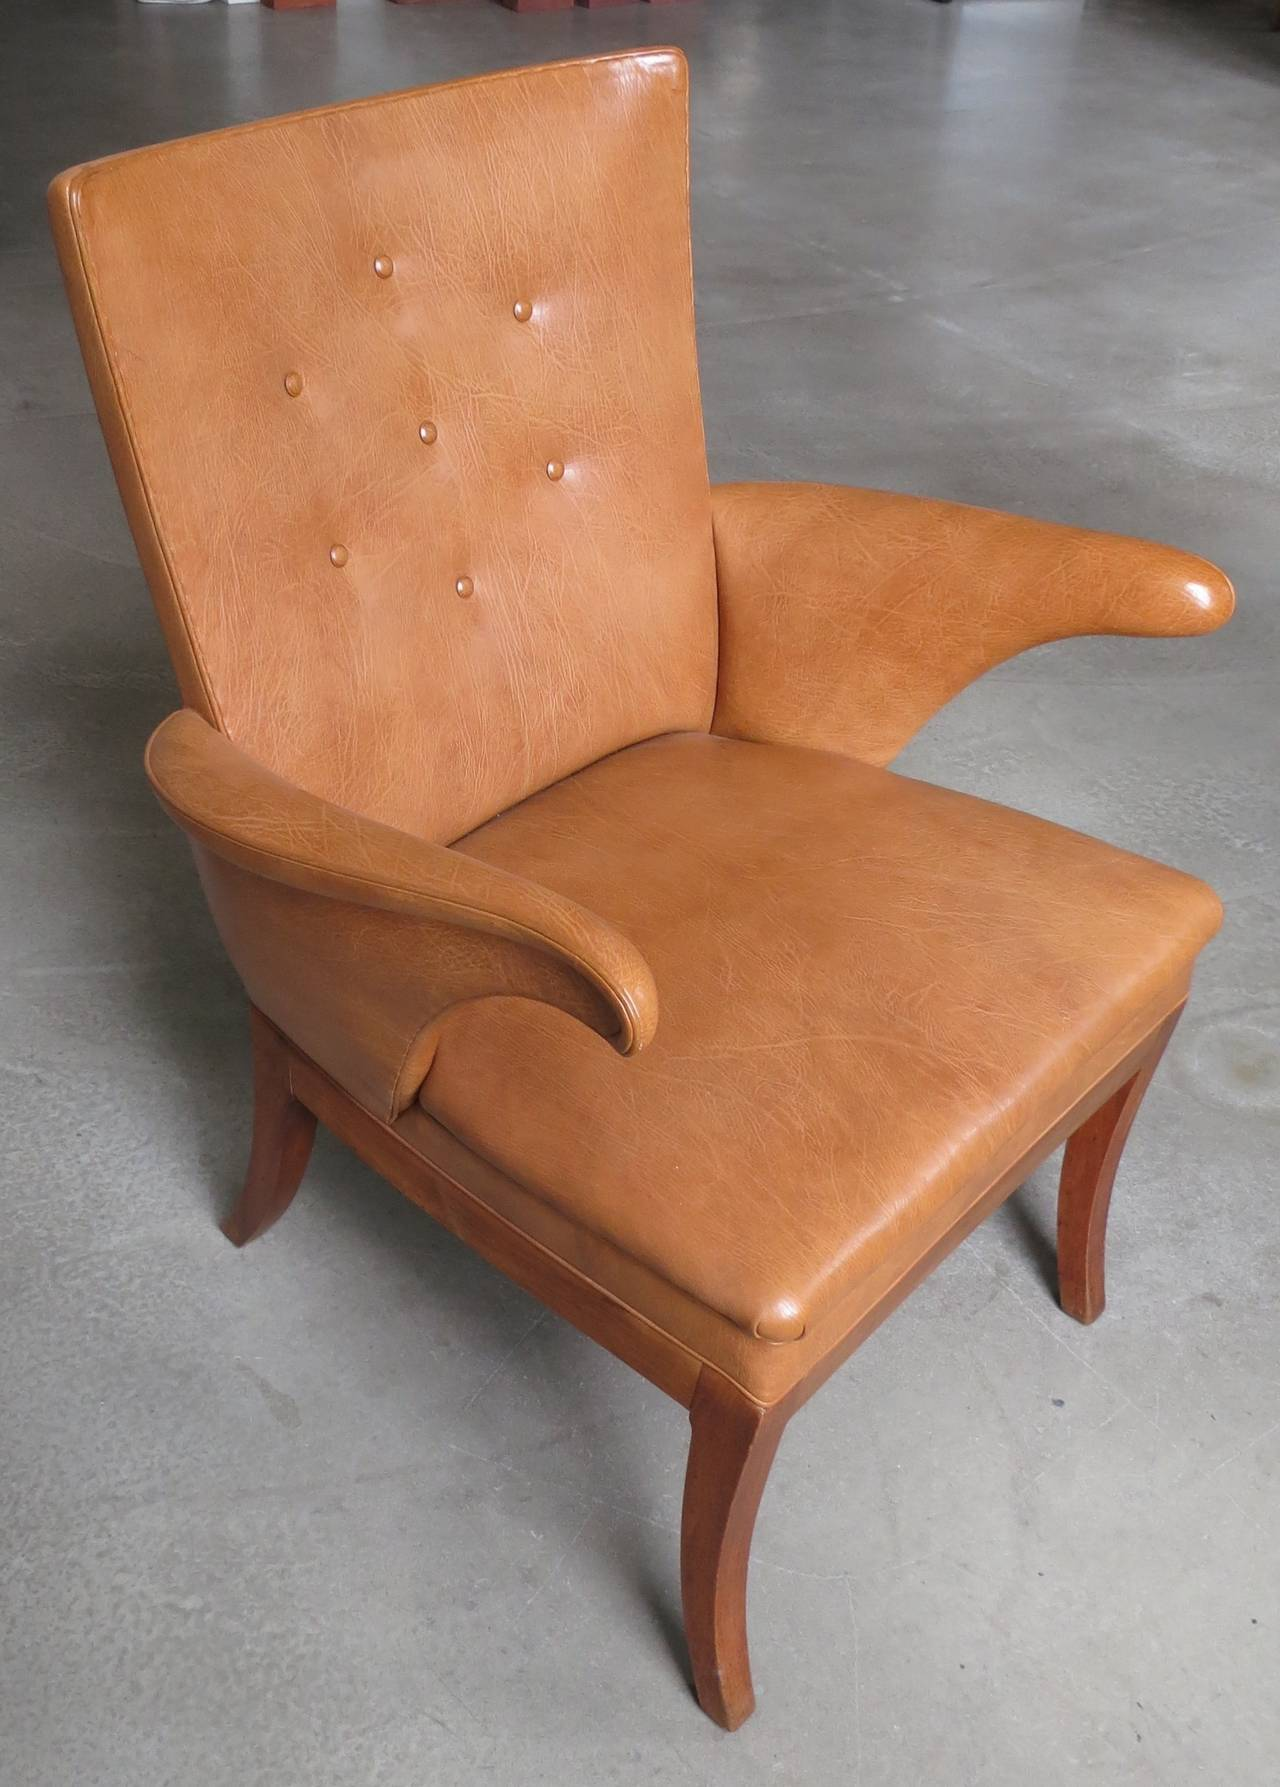 Armchair in Nigerian Goatskin by Frits Henningsen, 1930s. Designed and made by Frits Henningsen, this iconic chair is comfortable and elegant at the same time. It is upholstered in Nigerian goatskin with brass nailheads and sits on European walnut